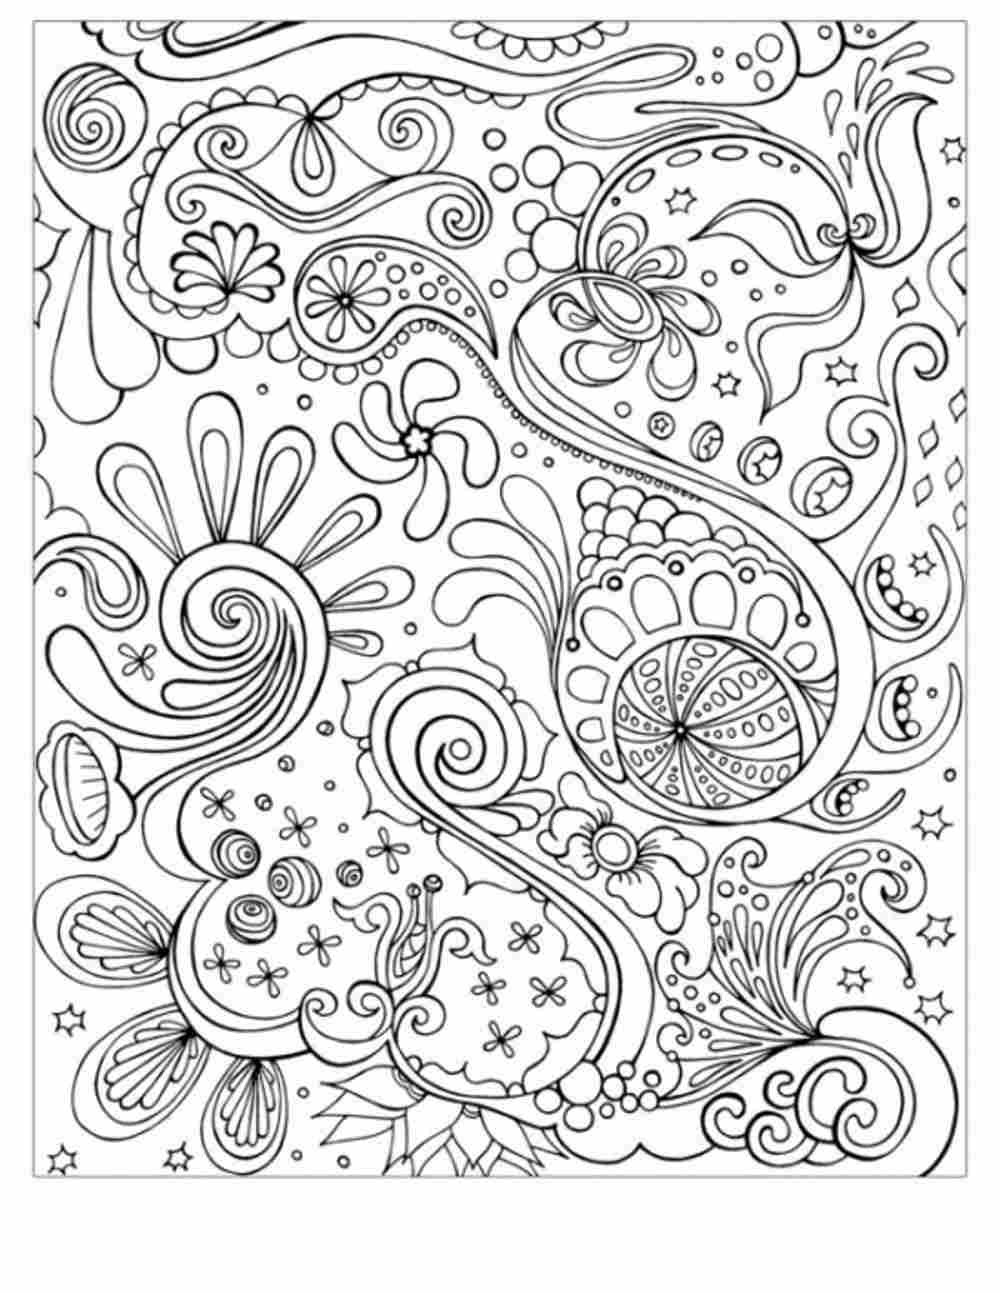 Printable Coloring Pages For Men  44 Awesome Free Printable Coloring Pages for Adults